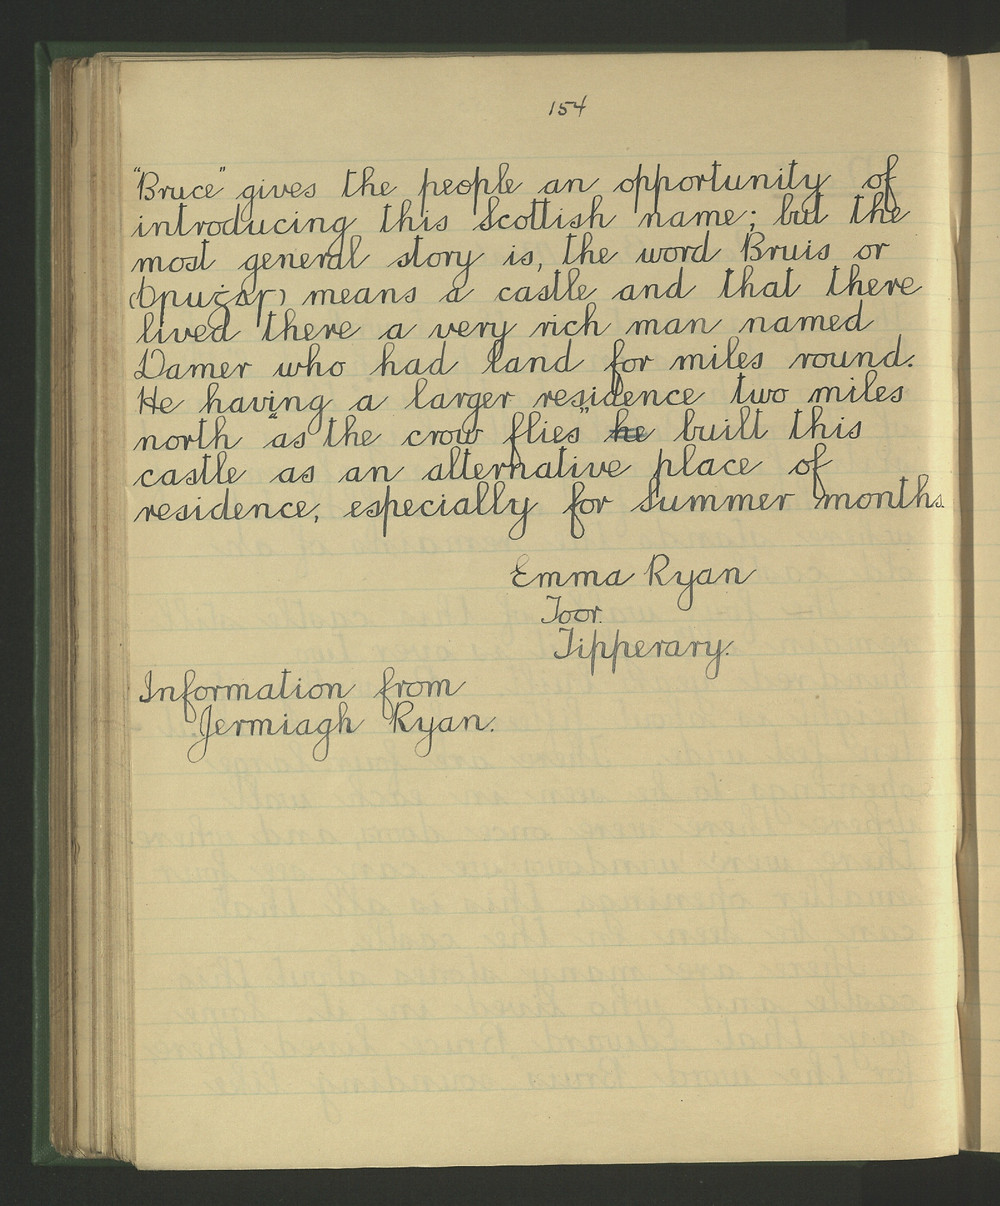 Extract from The Schools Collection at duchas.ie